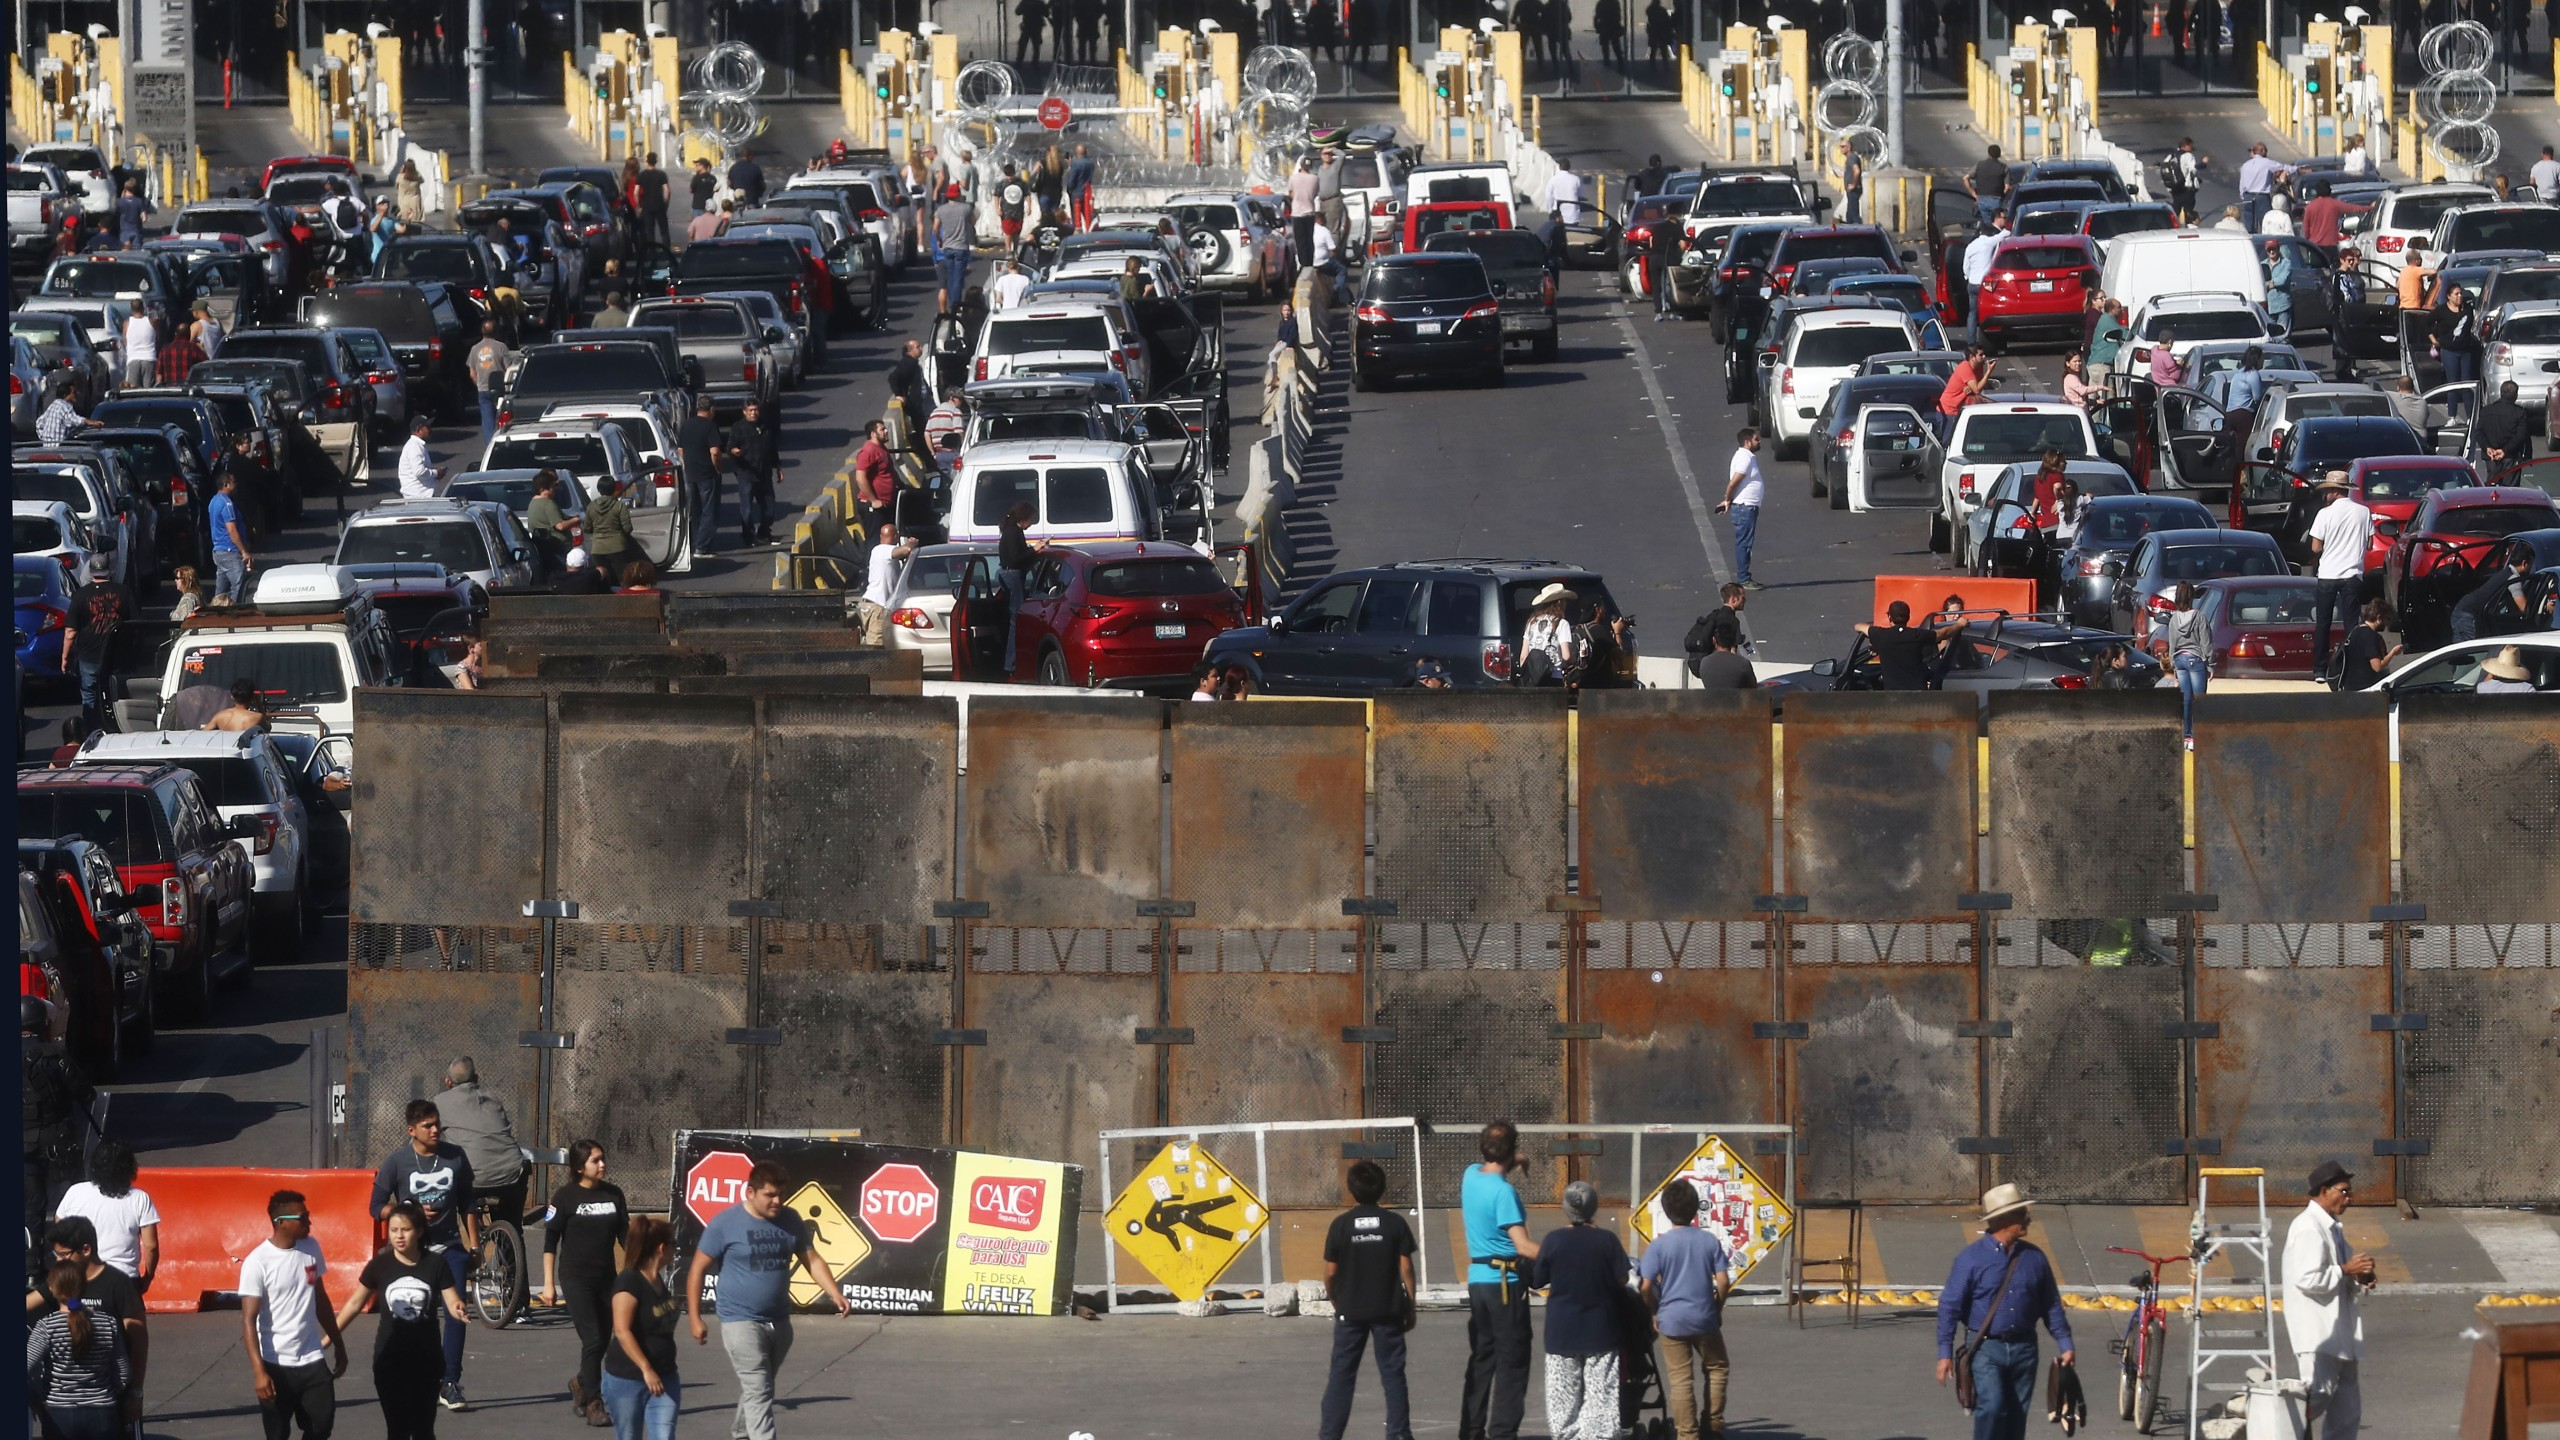 People attempting to cross in the U.S. look on as the San Ysidro port of entry stands closed at the U.S.-Mexico border on Nov. 25, 2018 in Tijuana, Mexico. (Credit: Mario Tama/Getty Images)